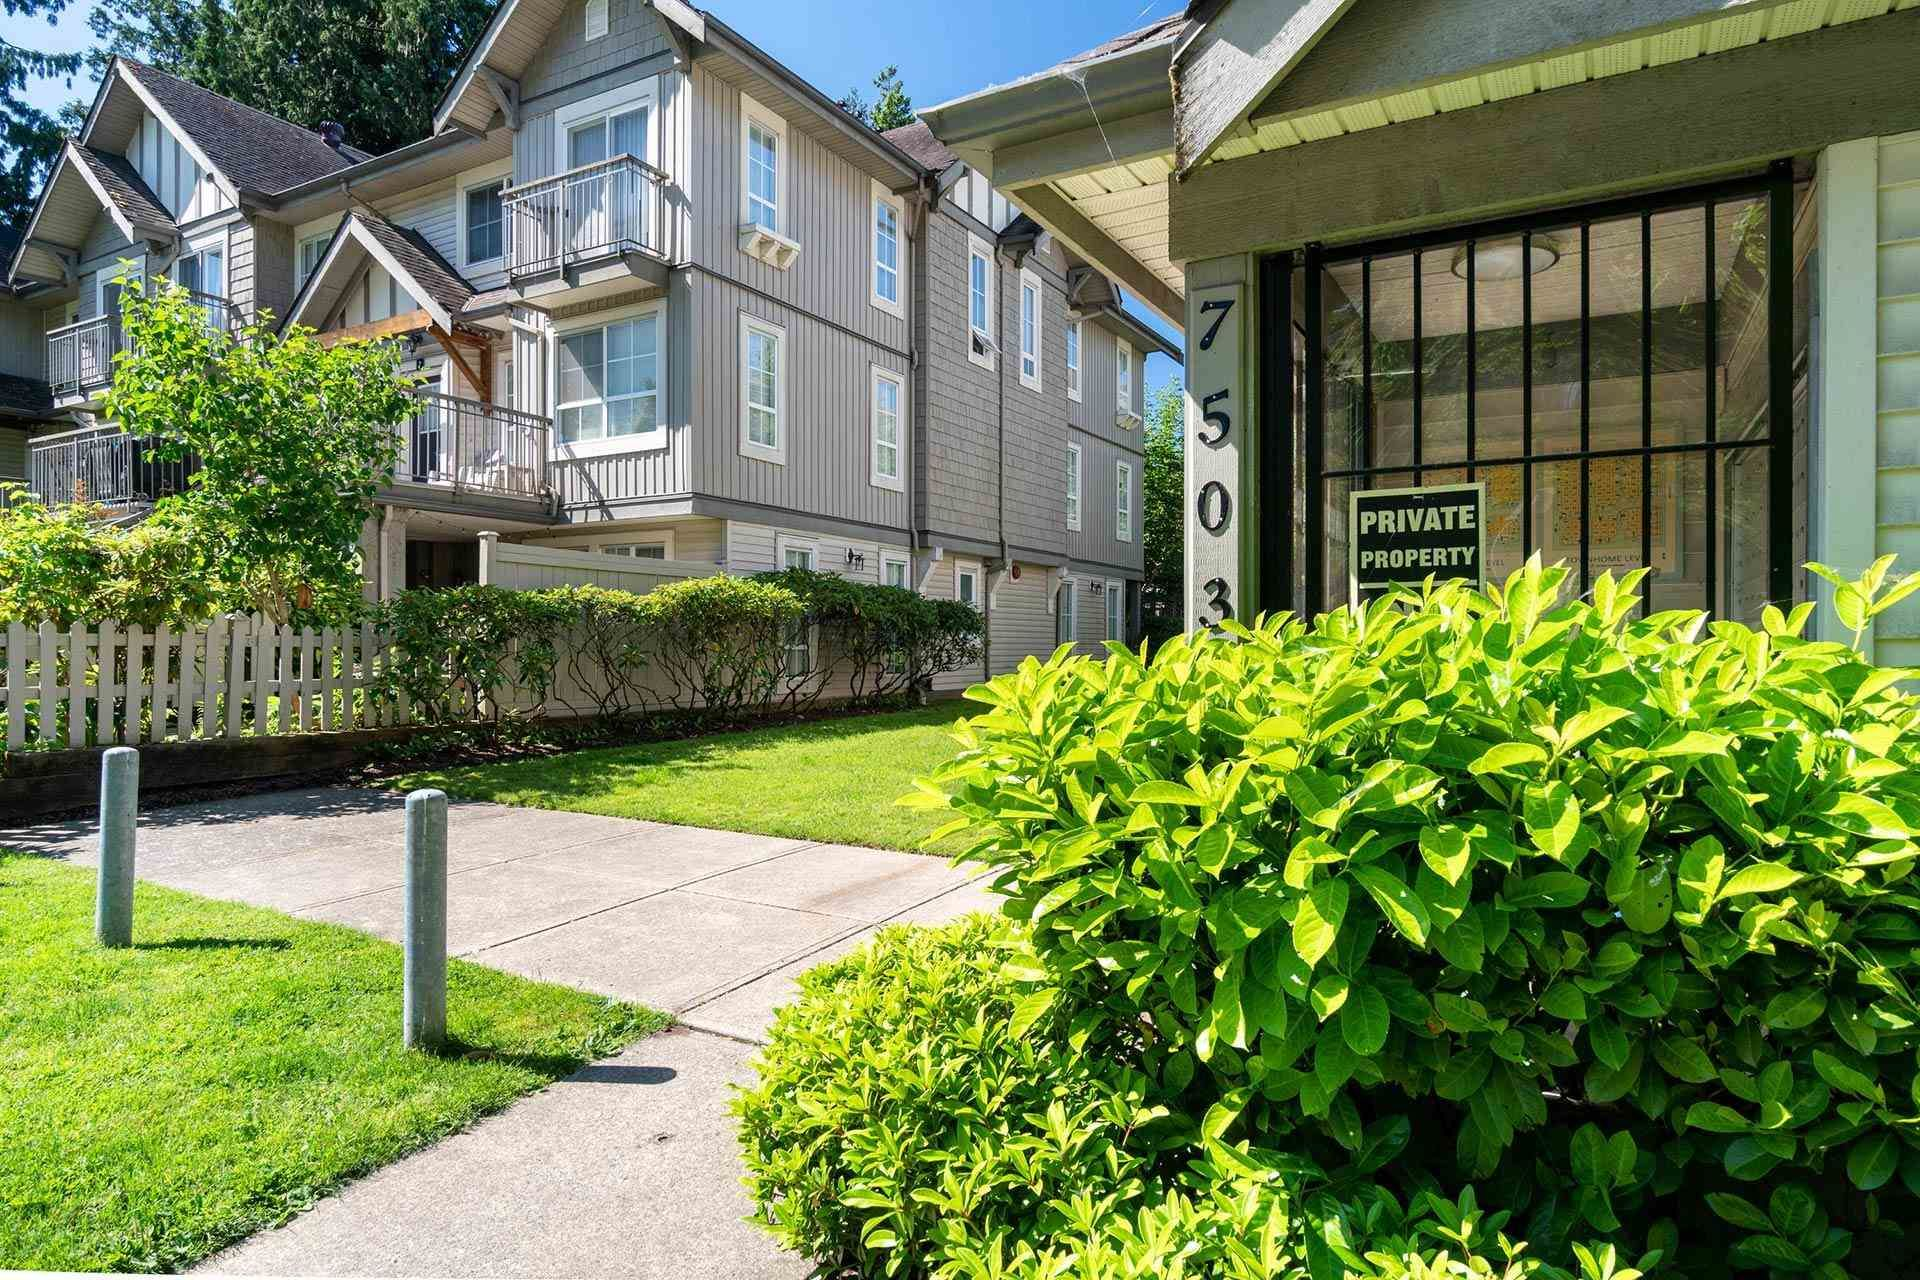 """Main Photo: 18 7503 18TH Street in Burnaby: Edmonds BE Townhouse for sale in """"South Borough"""" (Burnaby East)  : MLS®# R2606917"""